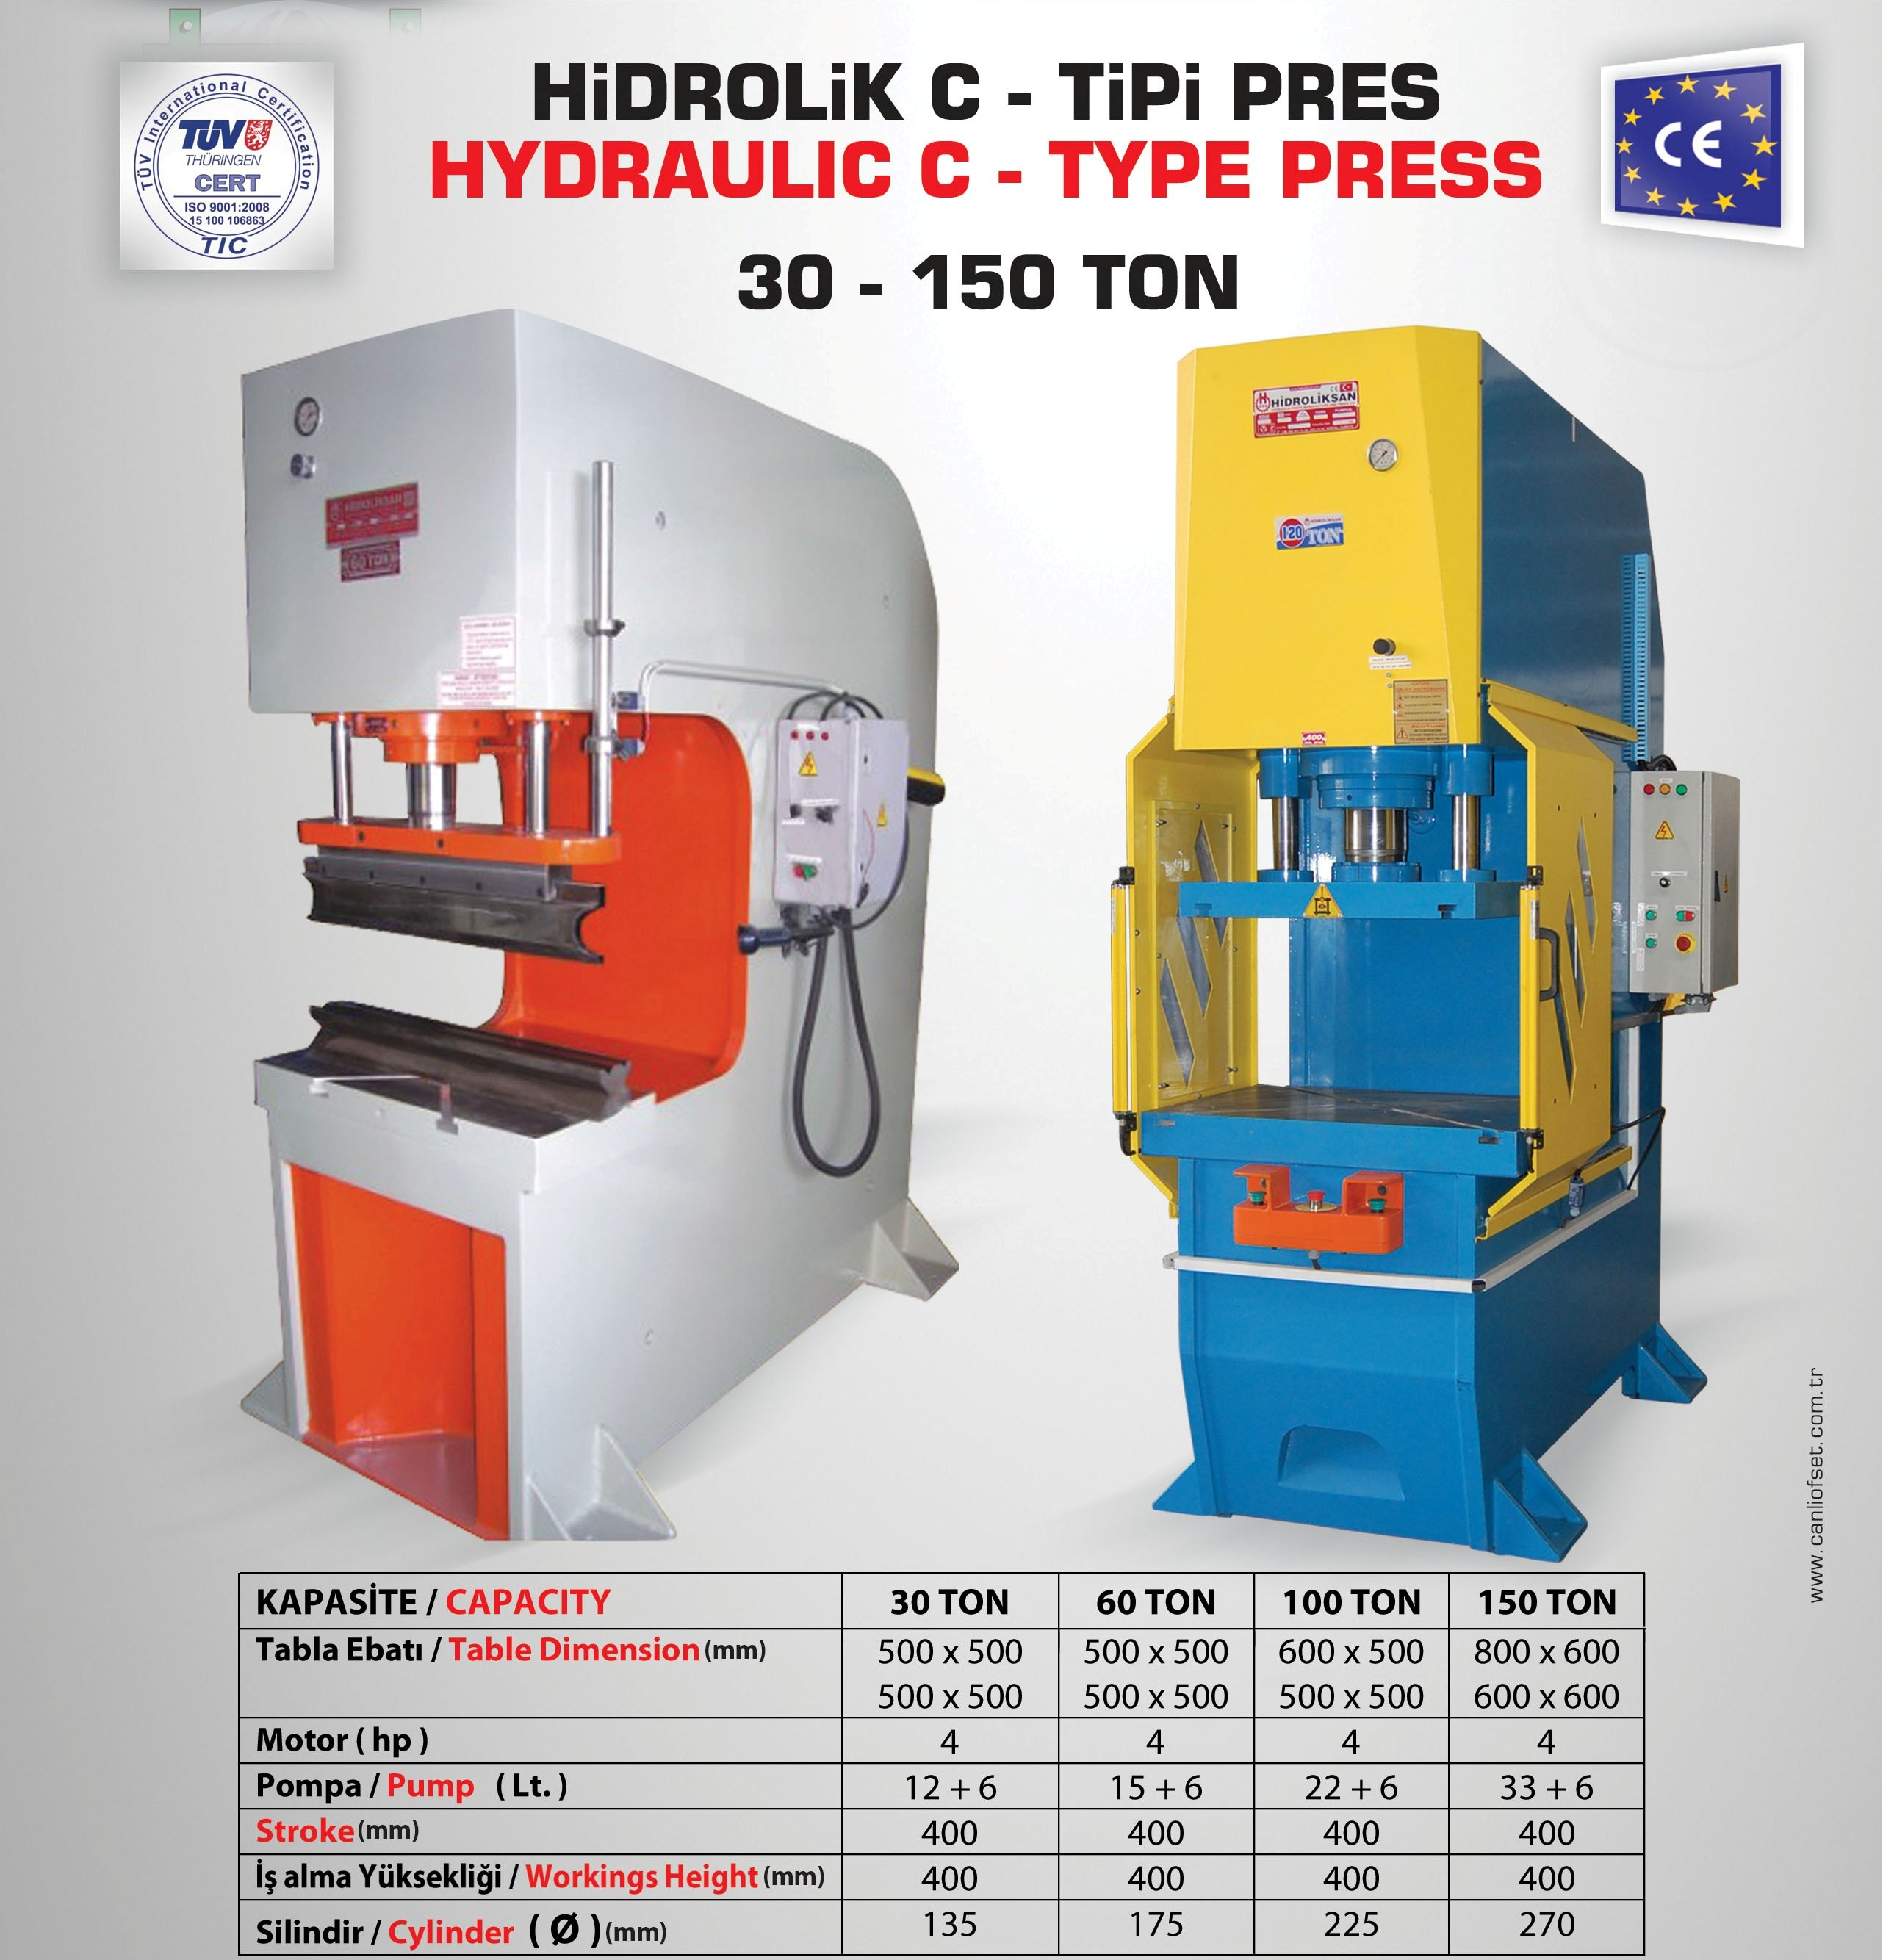 new HYDRAULIC 60 TON C-FRAME PRESS | Spartan Machine Tools